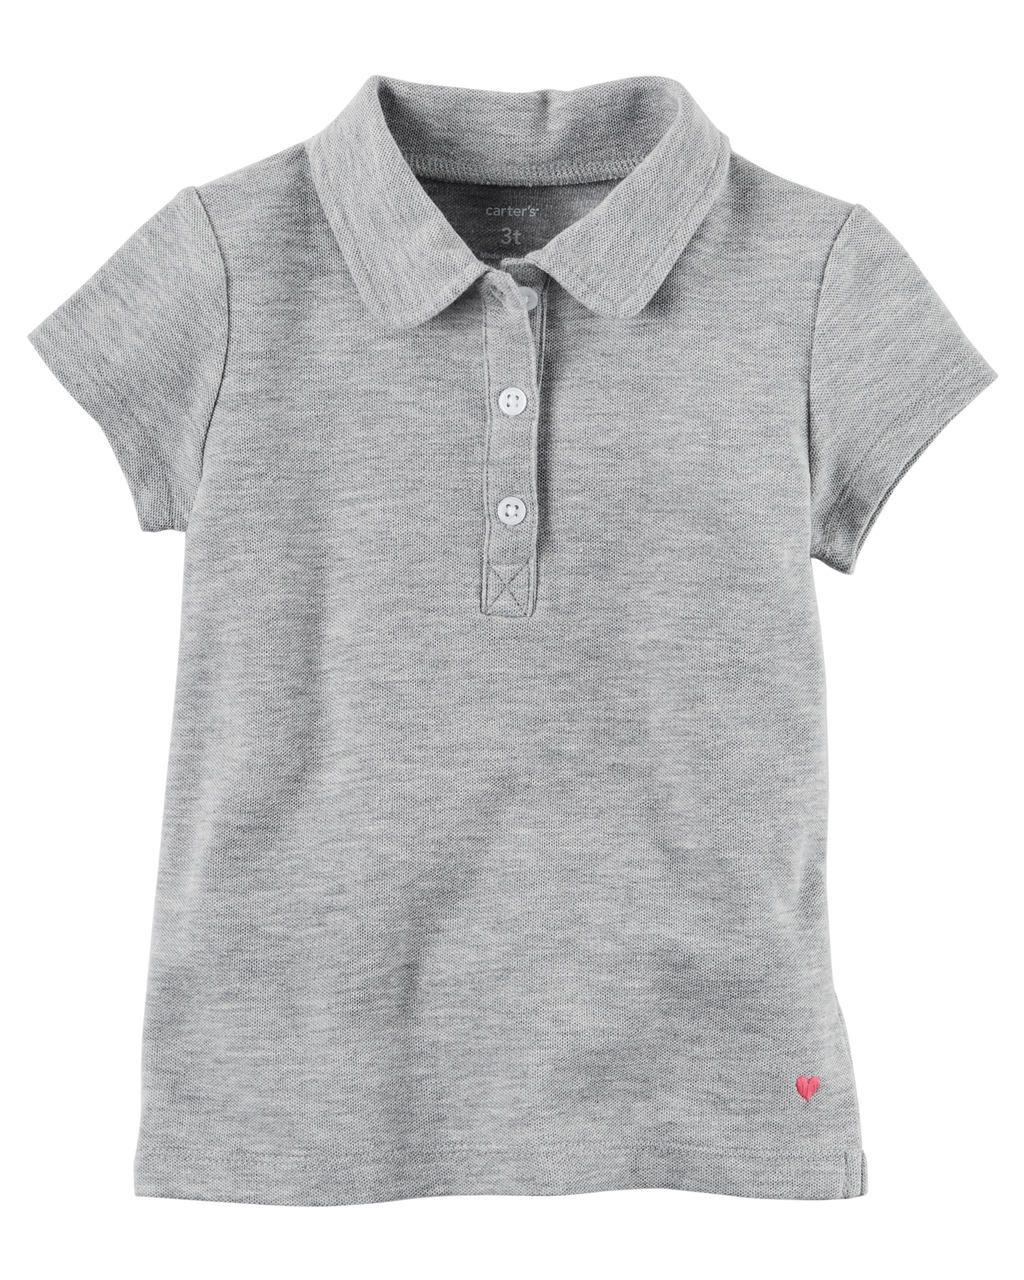 Camiseta Polo Cinza Carters